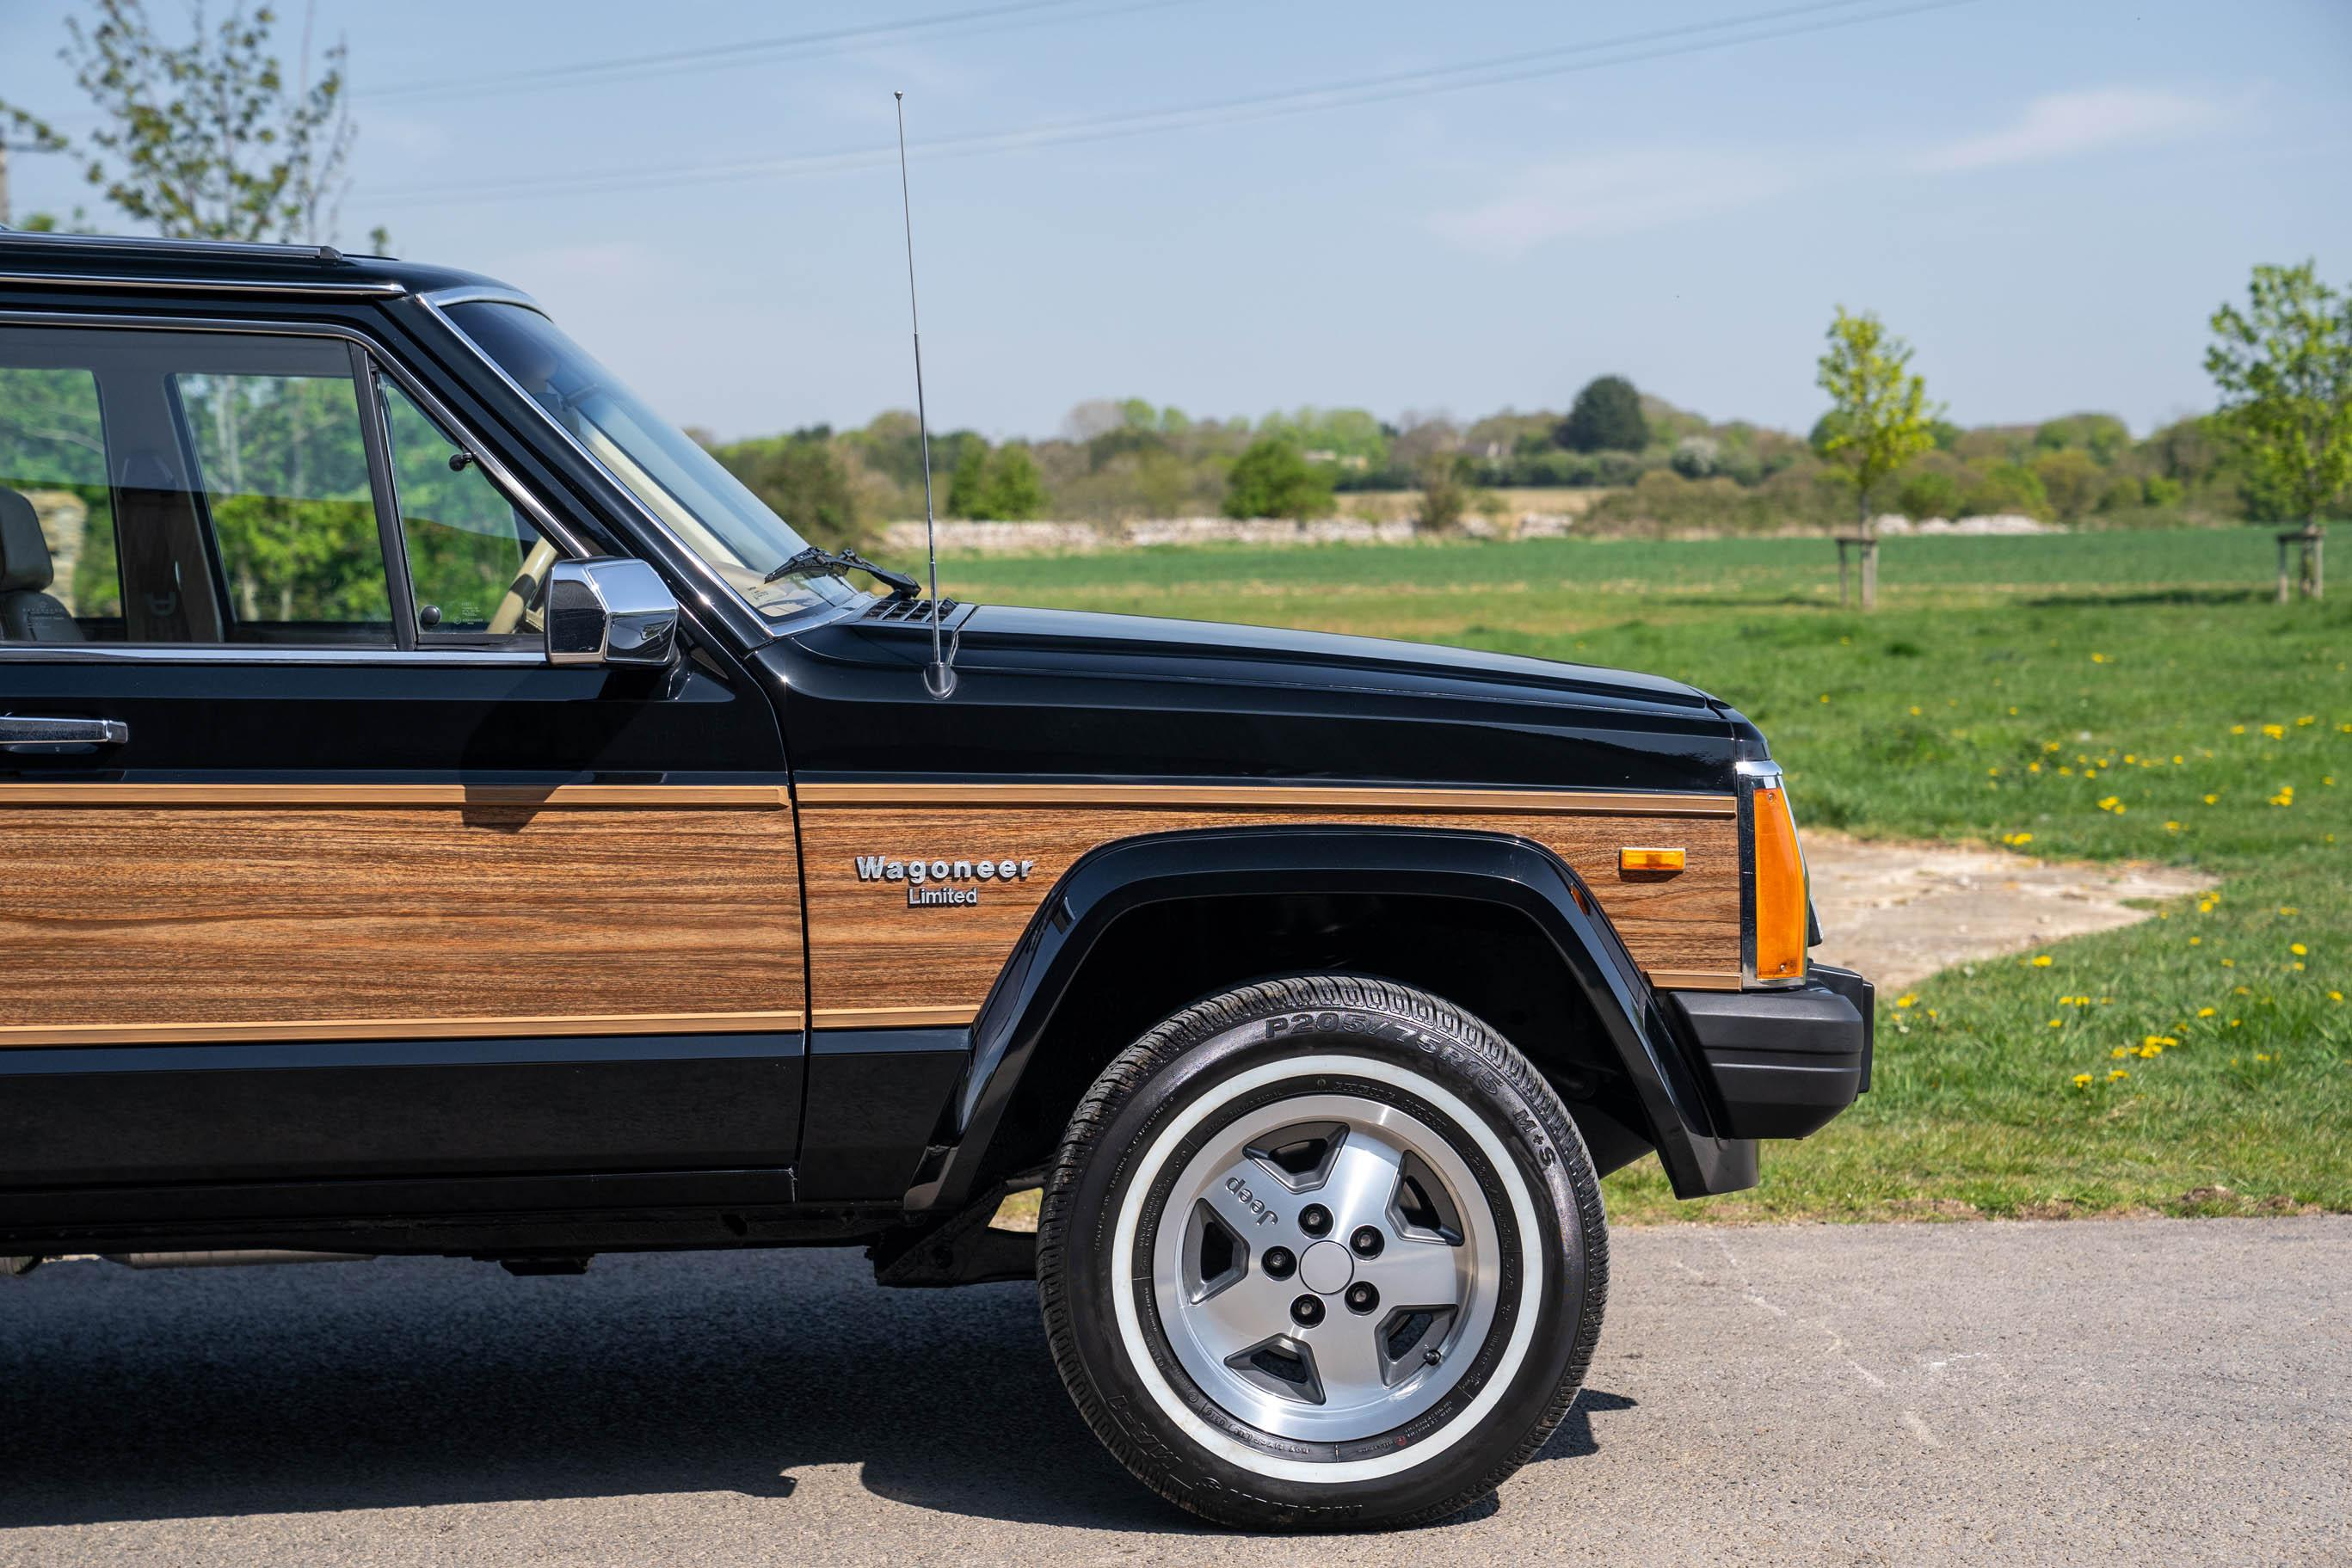 Jeep XJ Wagoneer Limited 1989